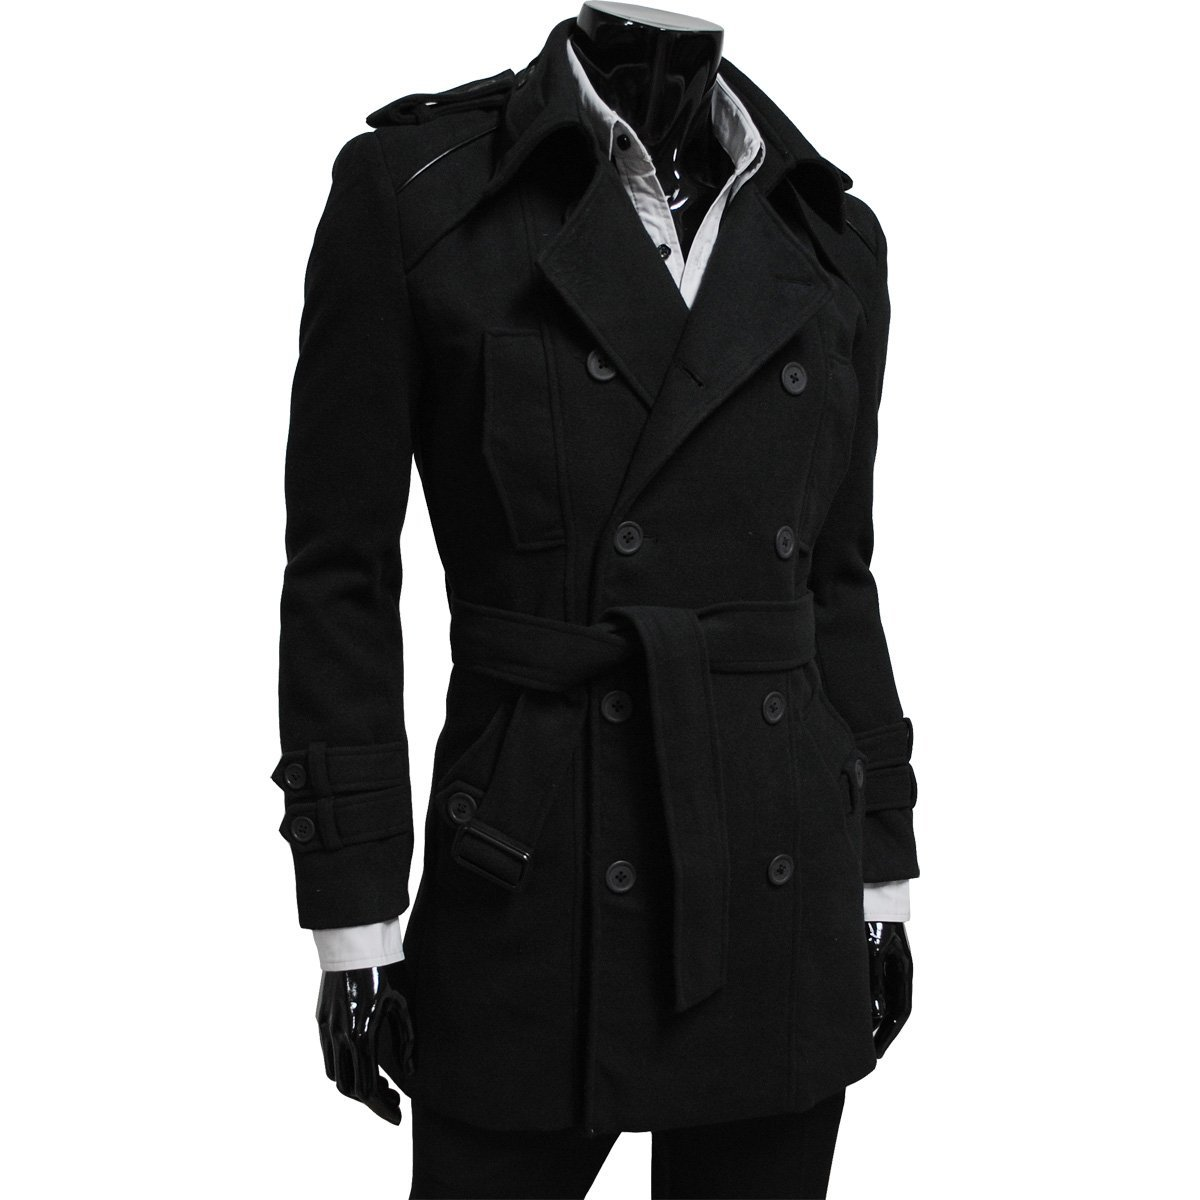 black trench coat, trench coats for men, leather trench coat, OBHEZLV